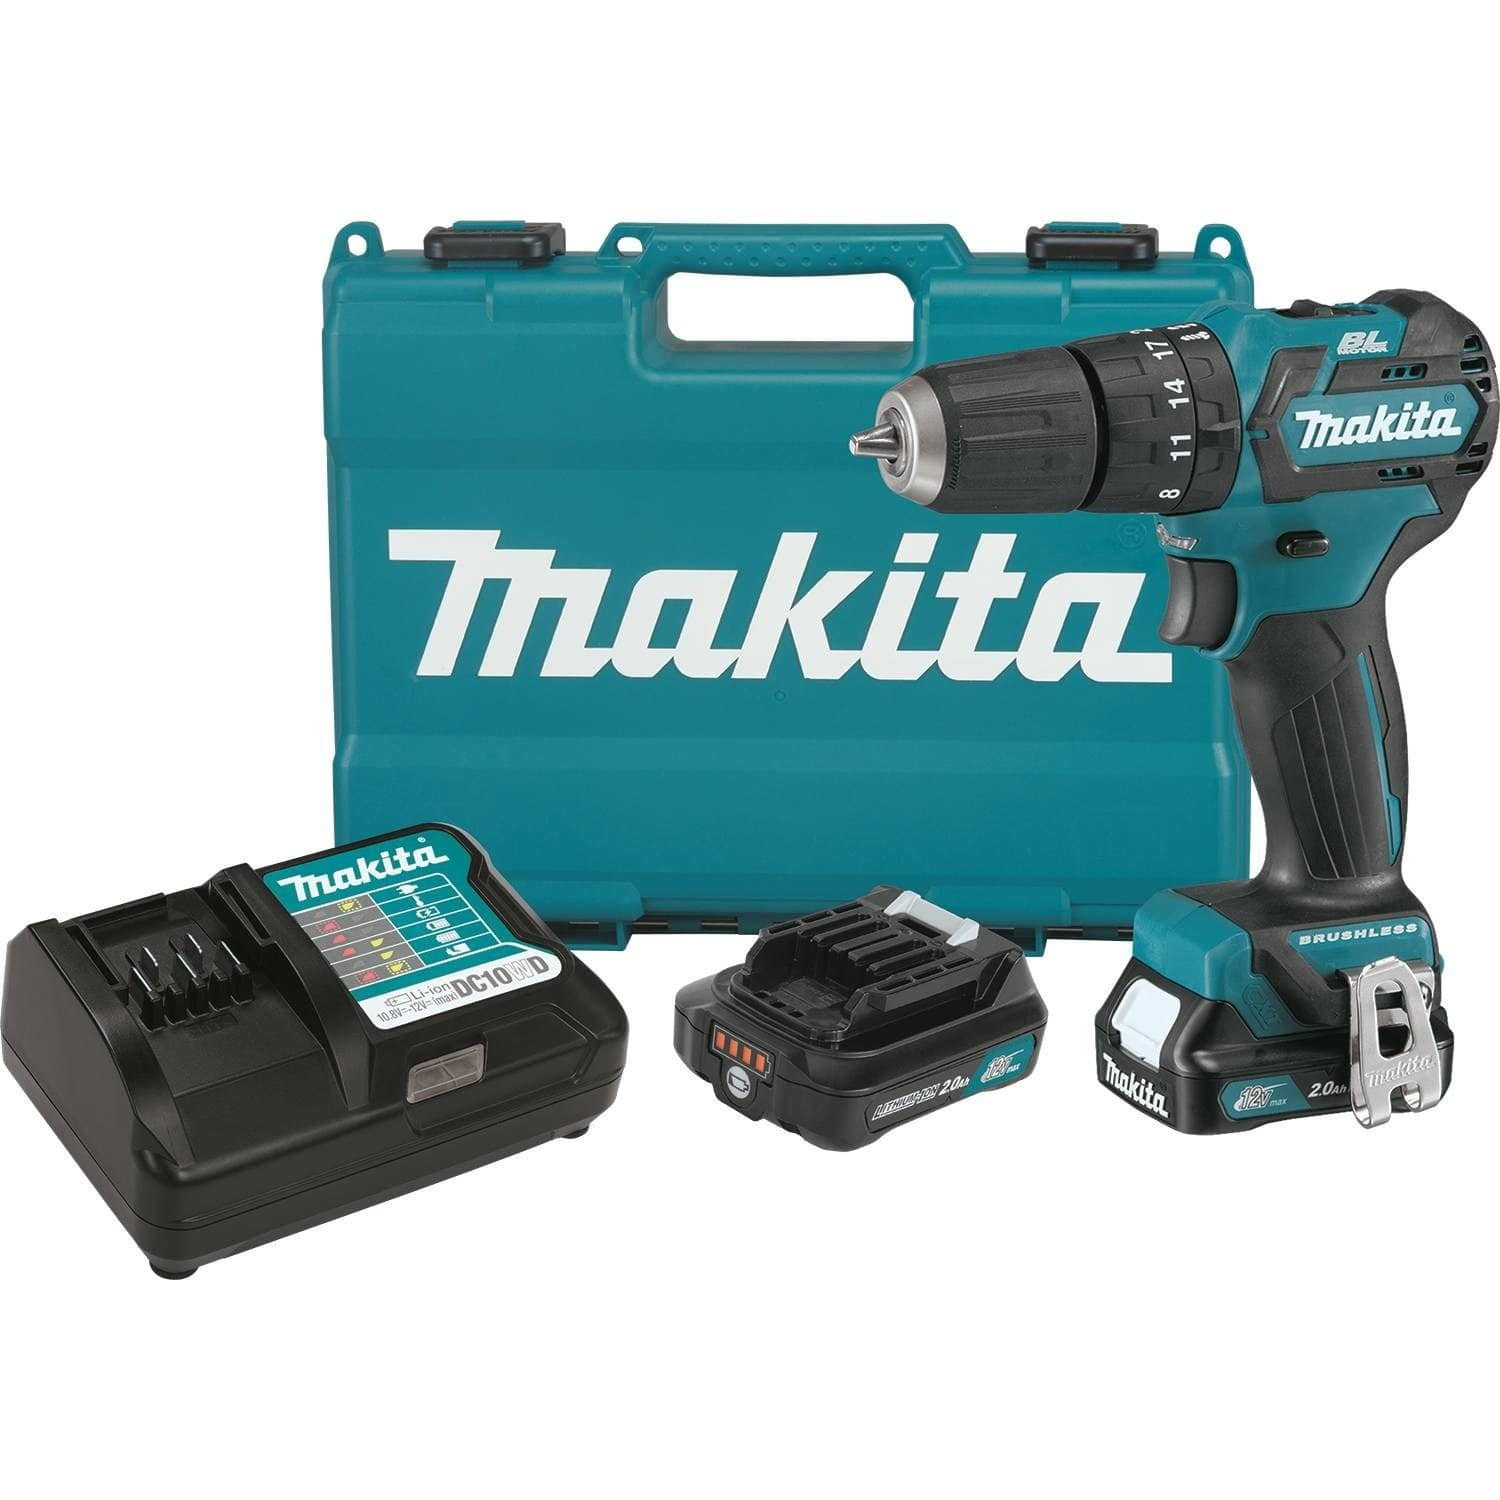 "Makita PH05R1 12V max CXT Brushless Cordless 3/8"" Hammer Drill-Driver Kit (2 x 2.0Ah Batteries) - $99.99 + FS"